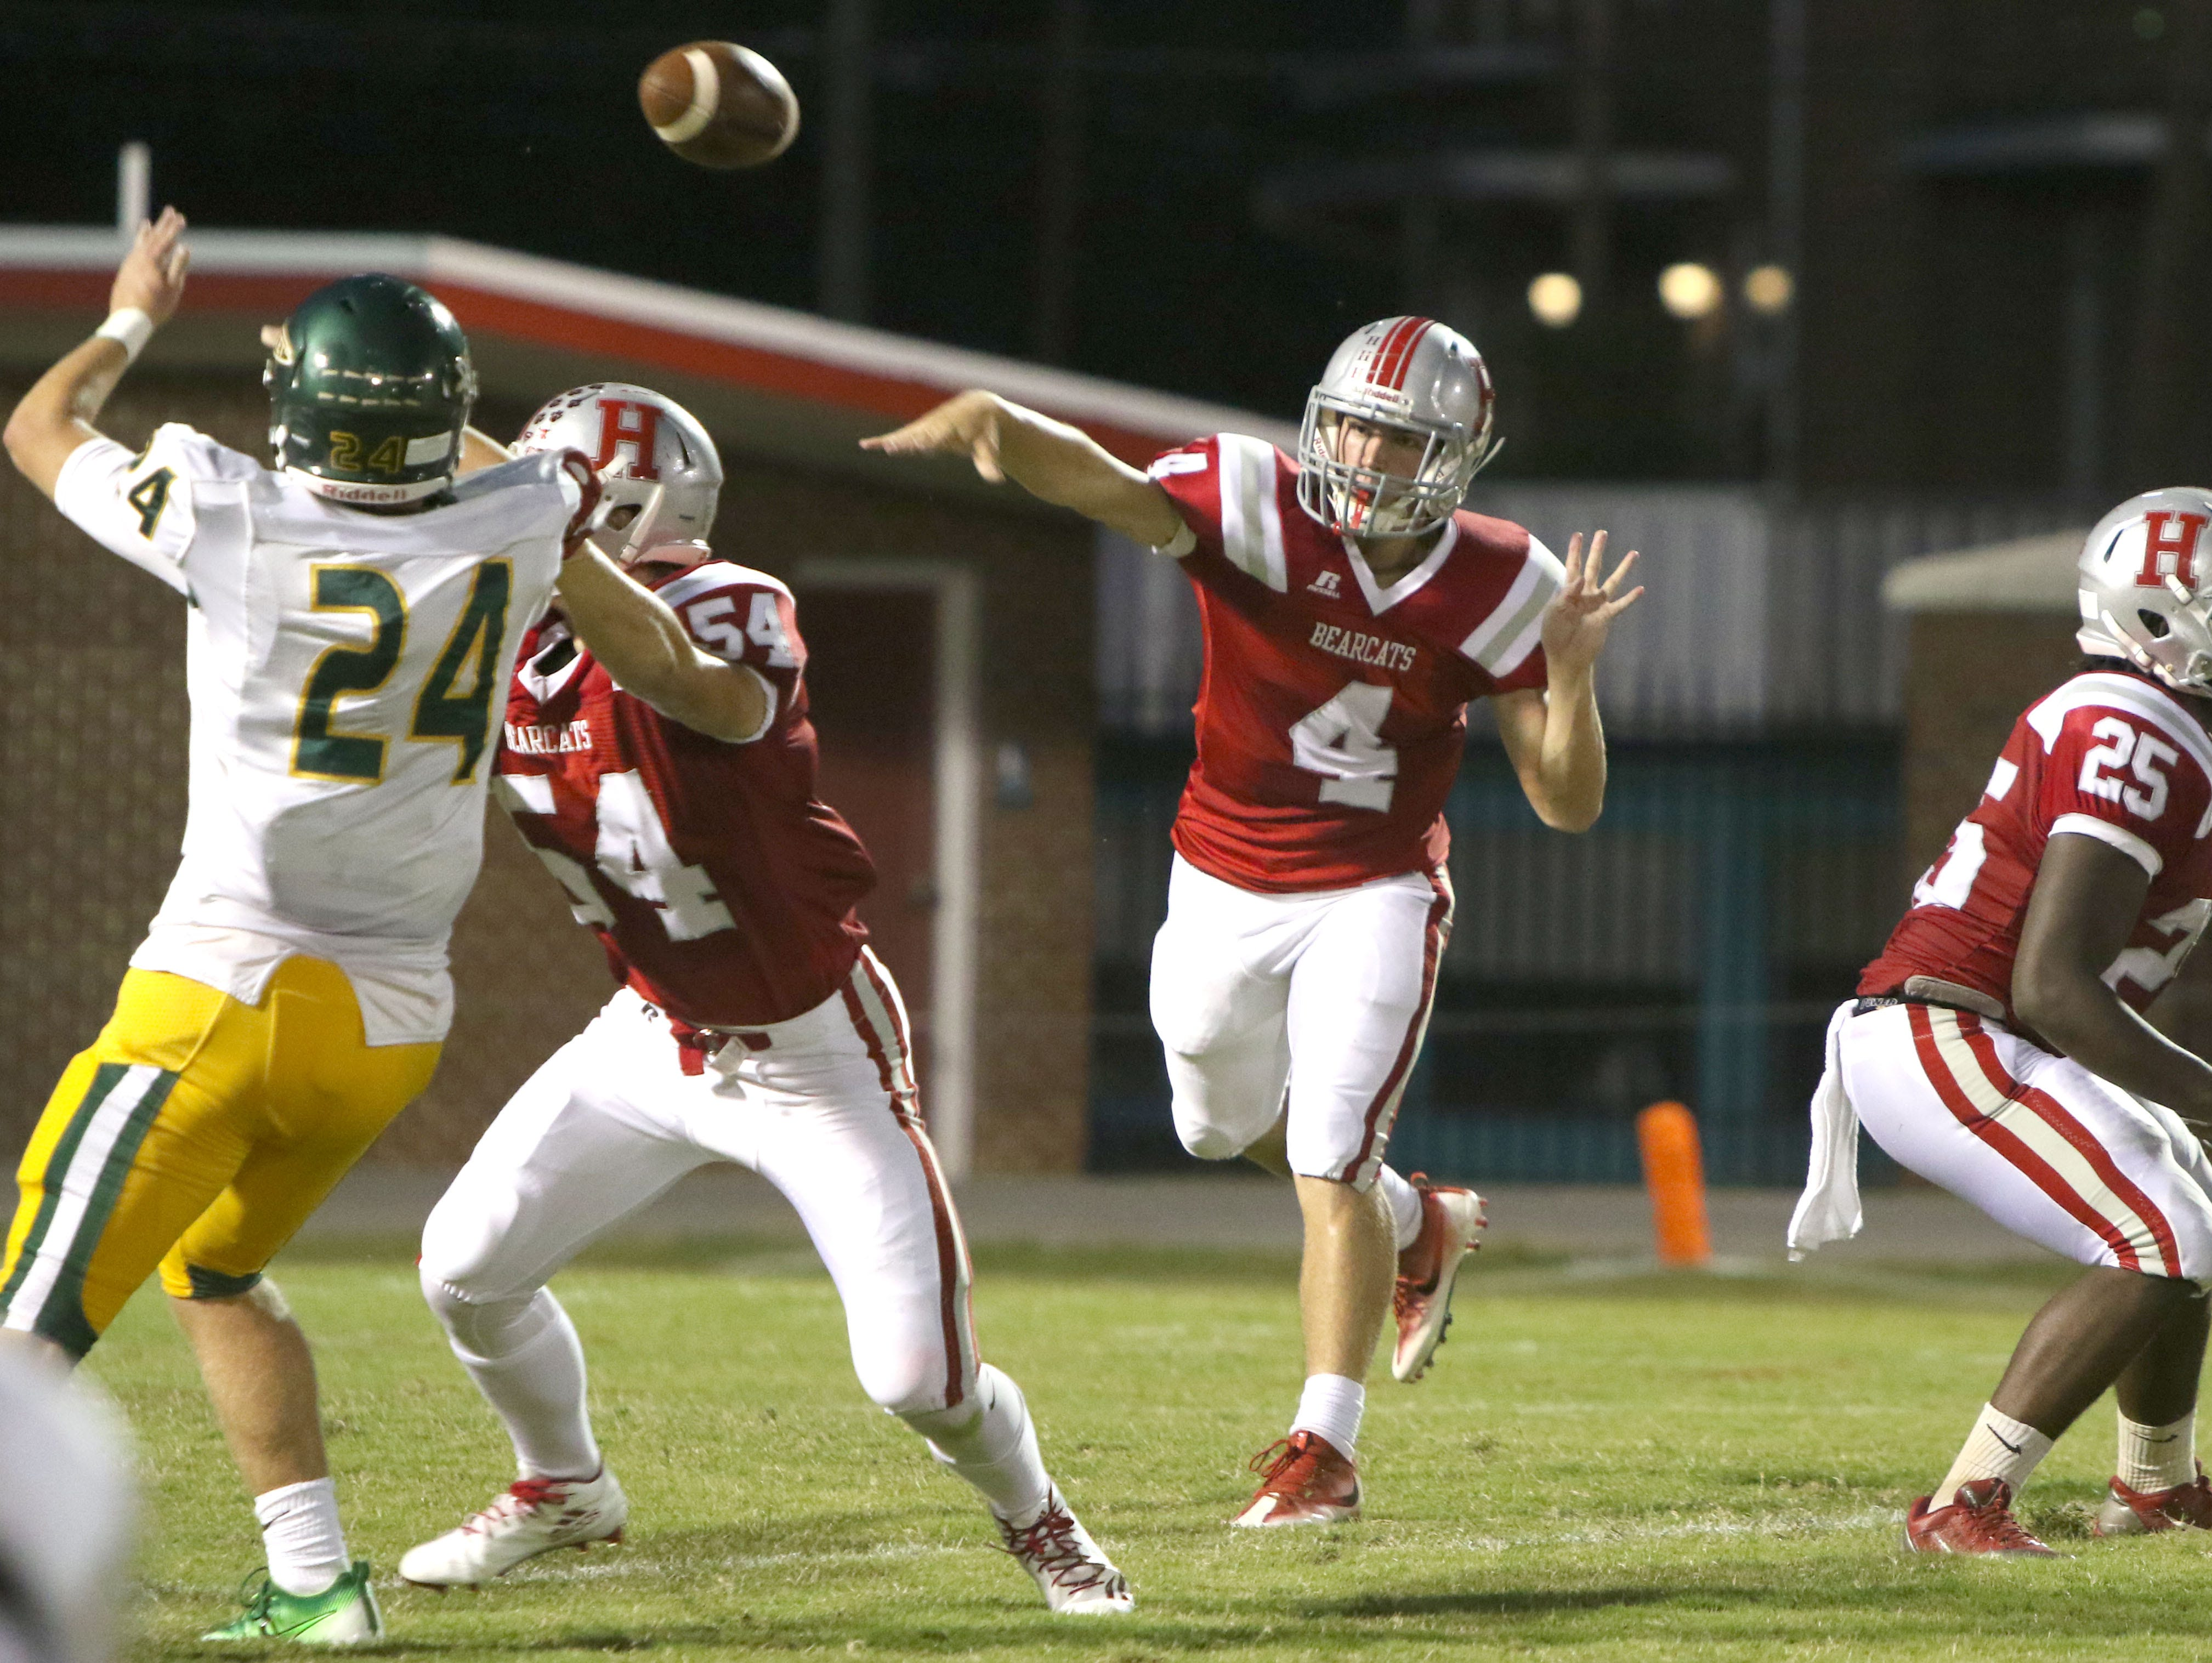 Alex Williford and Hendersonville are home for Friday's football game against Mitchell.